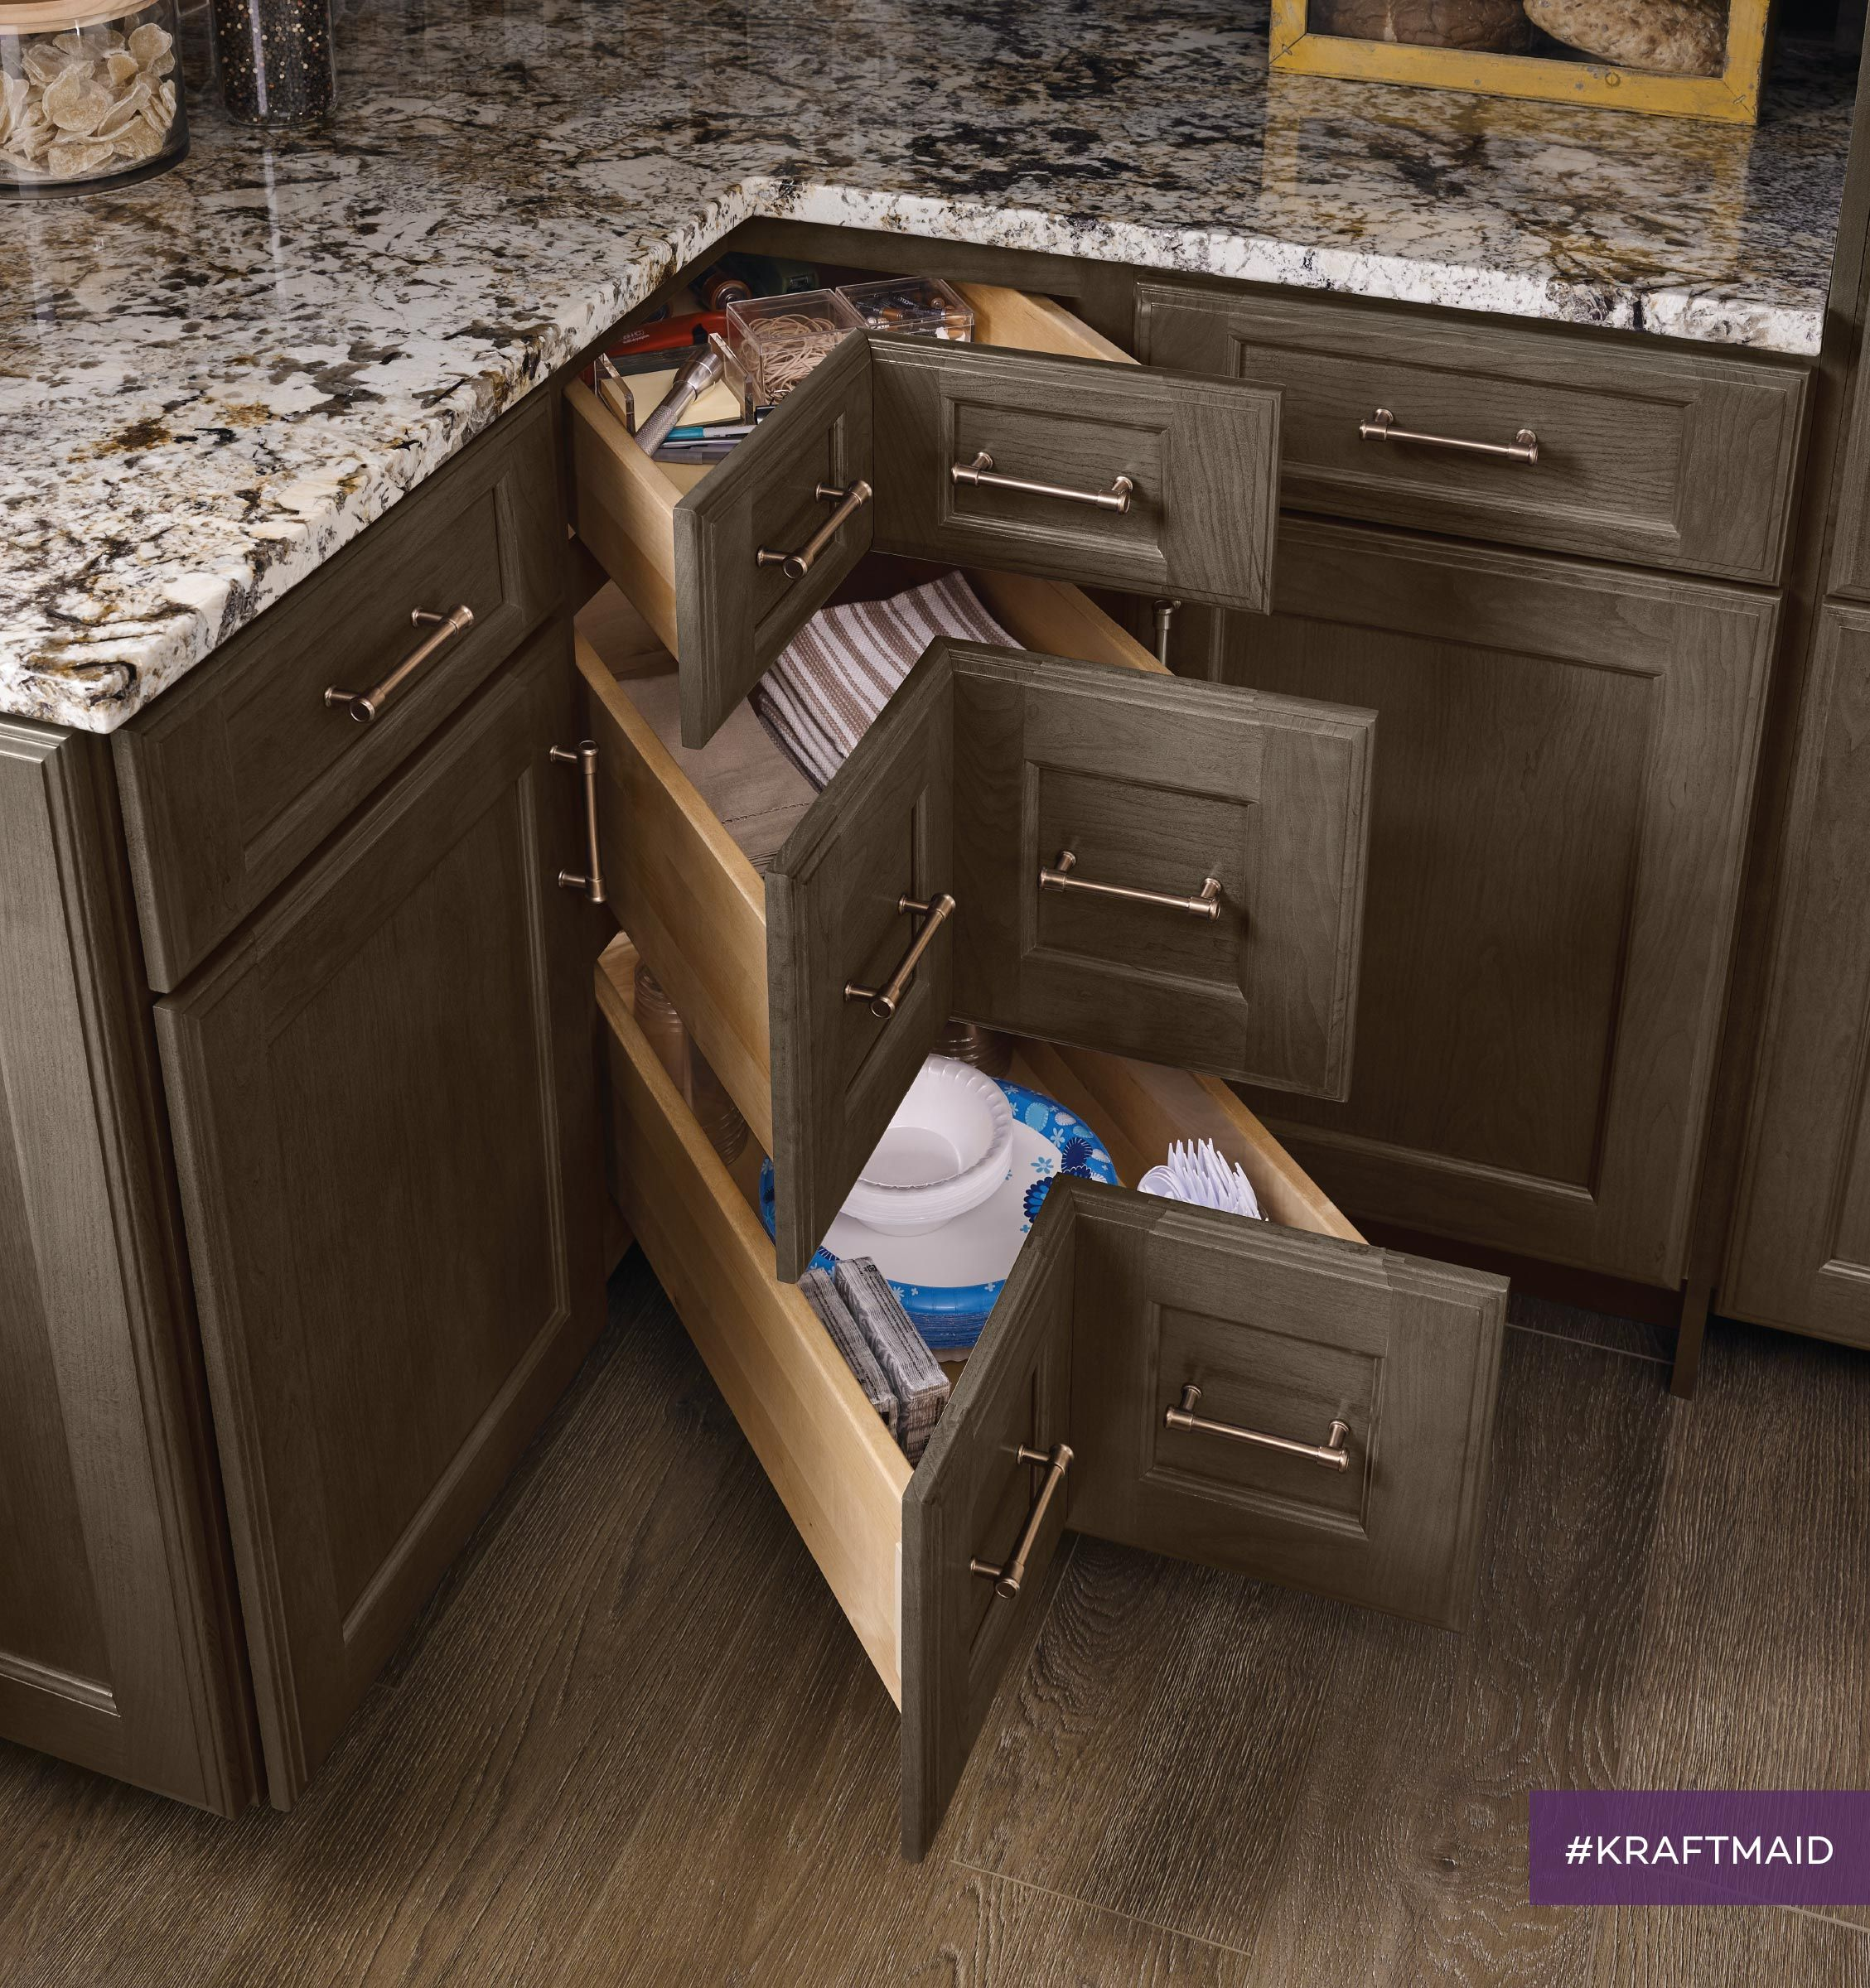 4 Storage Innovations In A Whoever S Home Kitchen Corner Drawers Kitchen Cabinet Design Kitchen Innovation